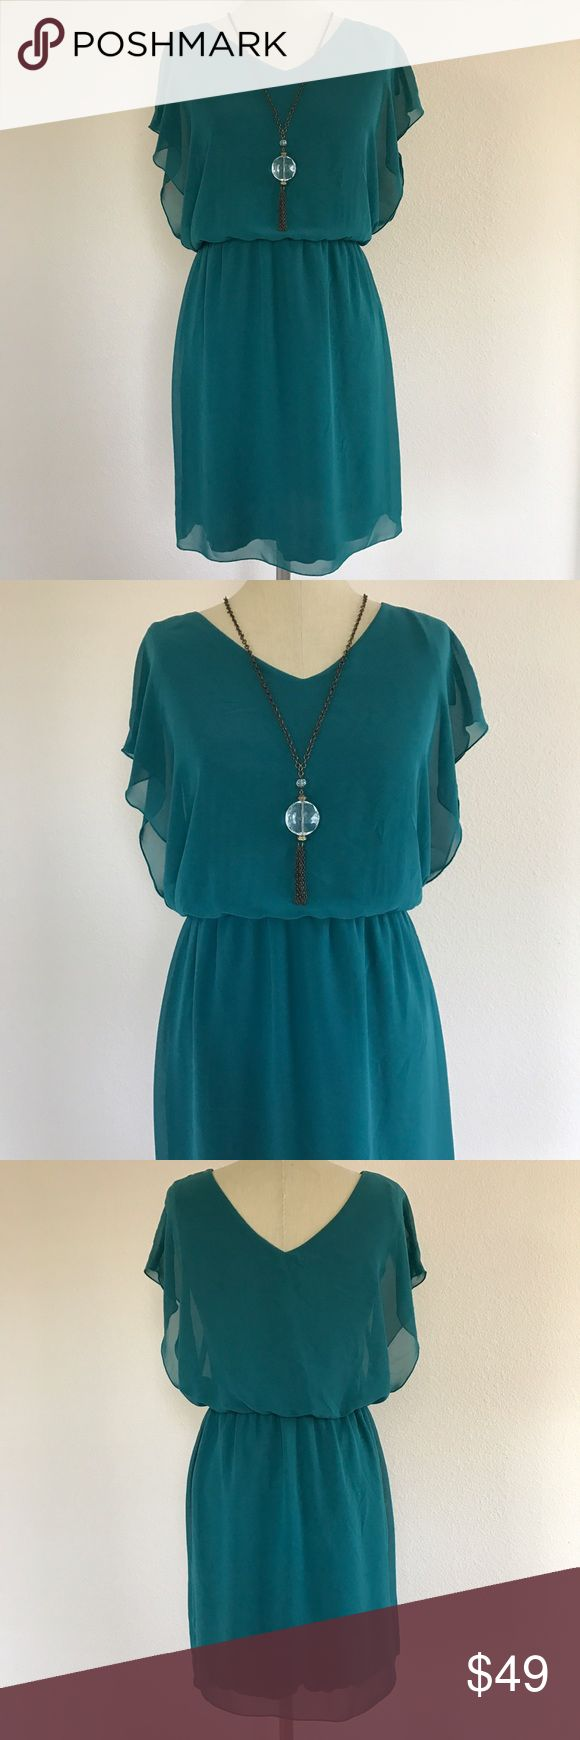 Green Chiffon Dress Cute chiffon dress in a teal green. Short sleeve with cinched waist, kind of blouses over on top. Brand is En Focus Studio. Size 6, excellent condition. Measurements available on request   ✖️No Trades ✖️No Holds ✖️No Modeling ✖️No PayPal/ Merc EnFocus Studio Dresses